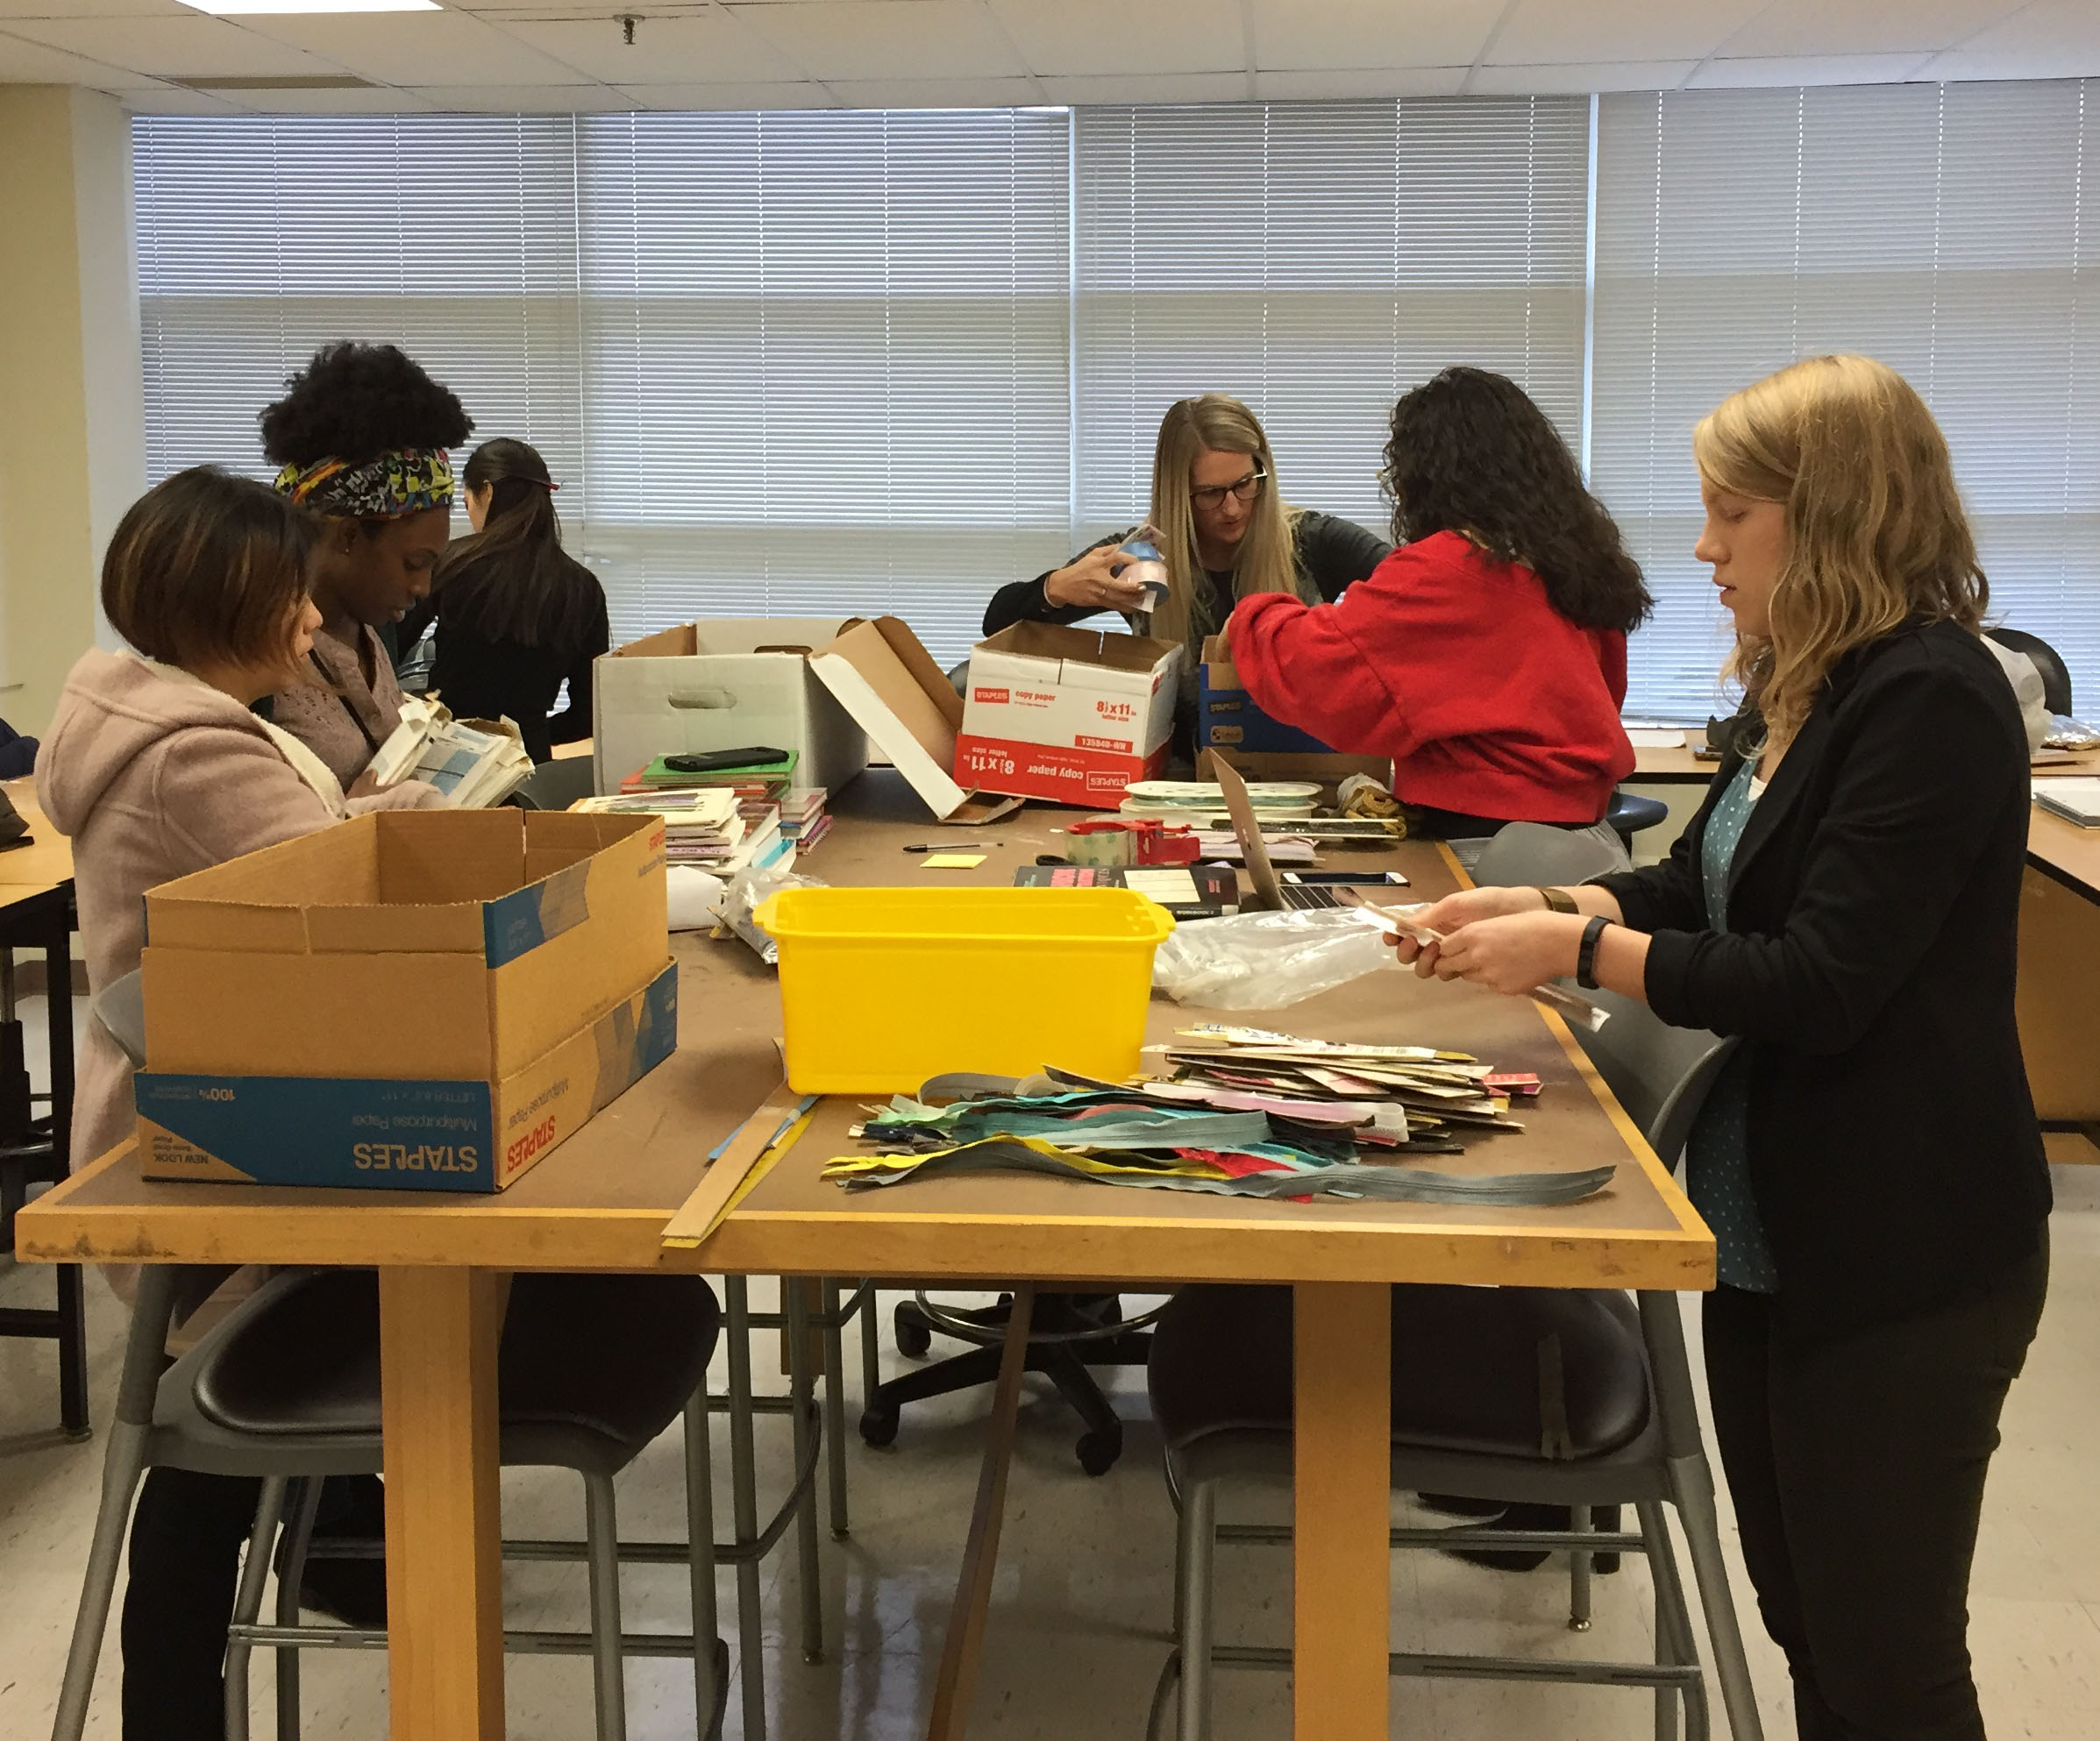 Students from the M.F.I.S. graduate program  packing boxes for Notions for Nigeria Drive